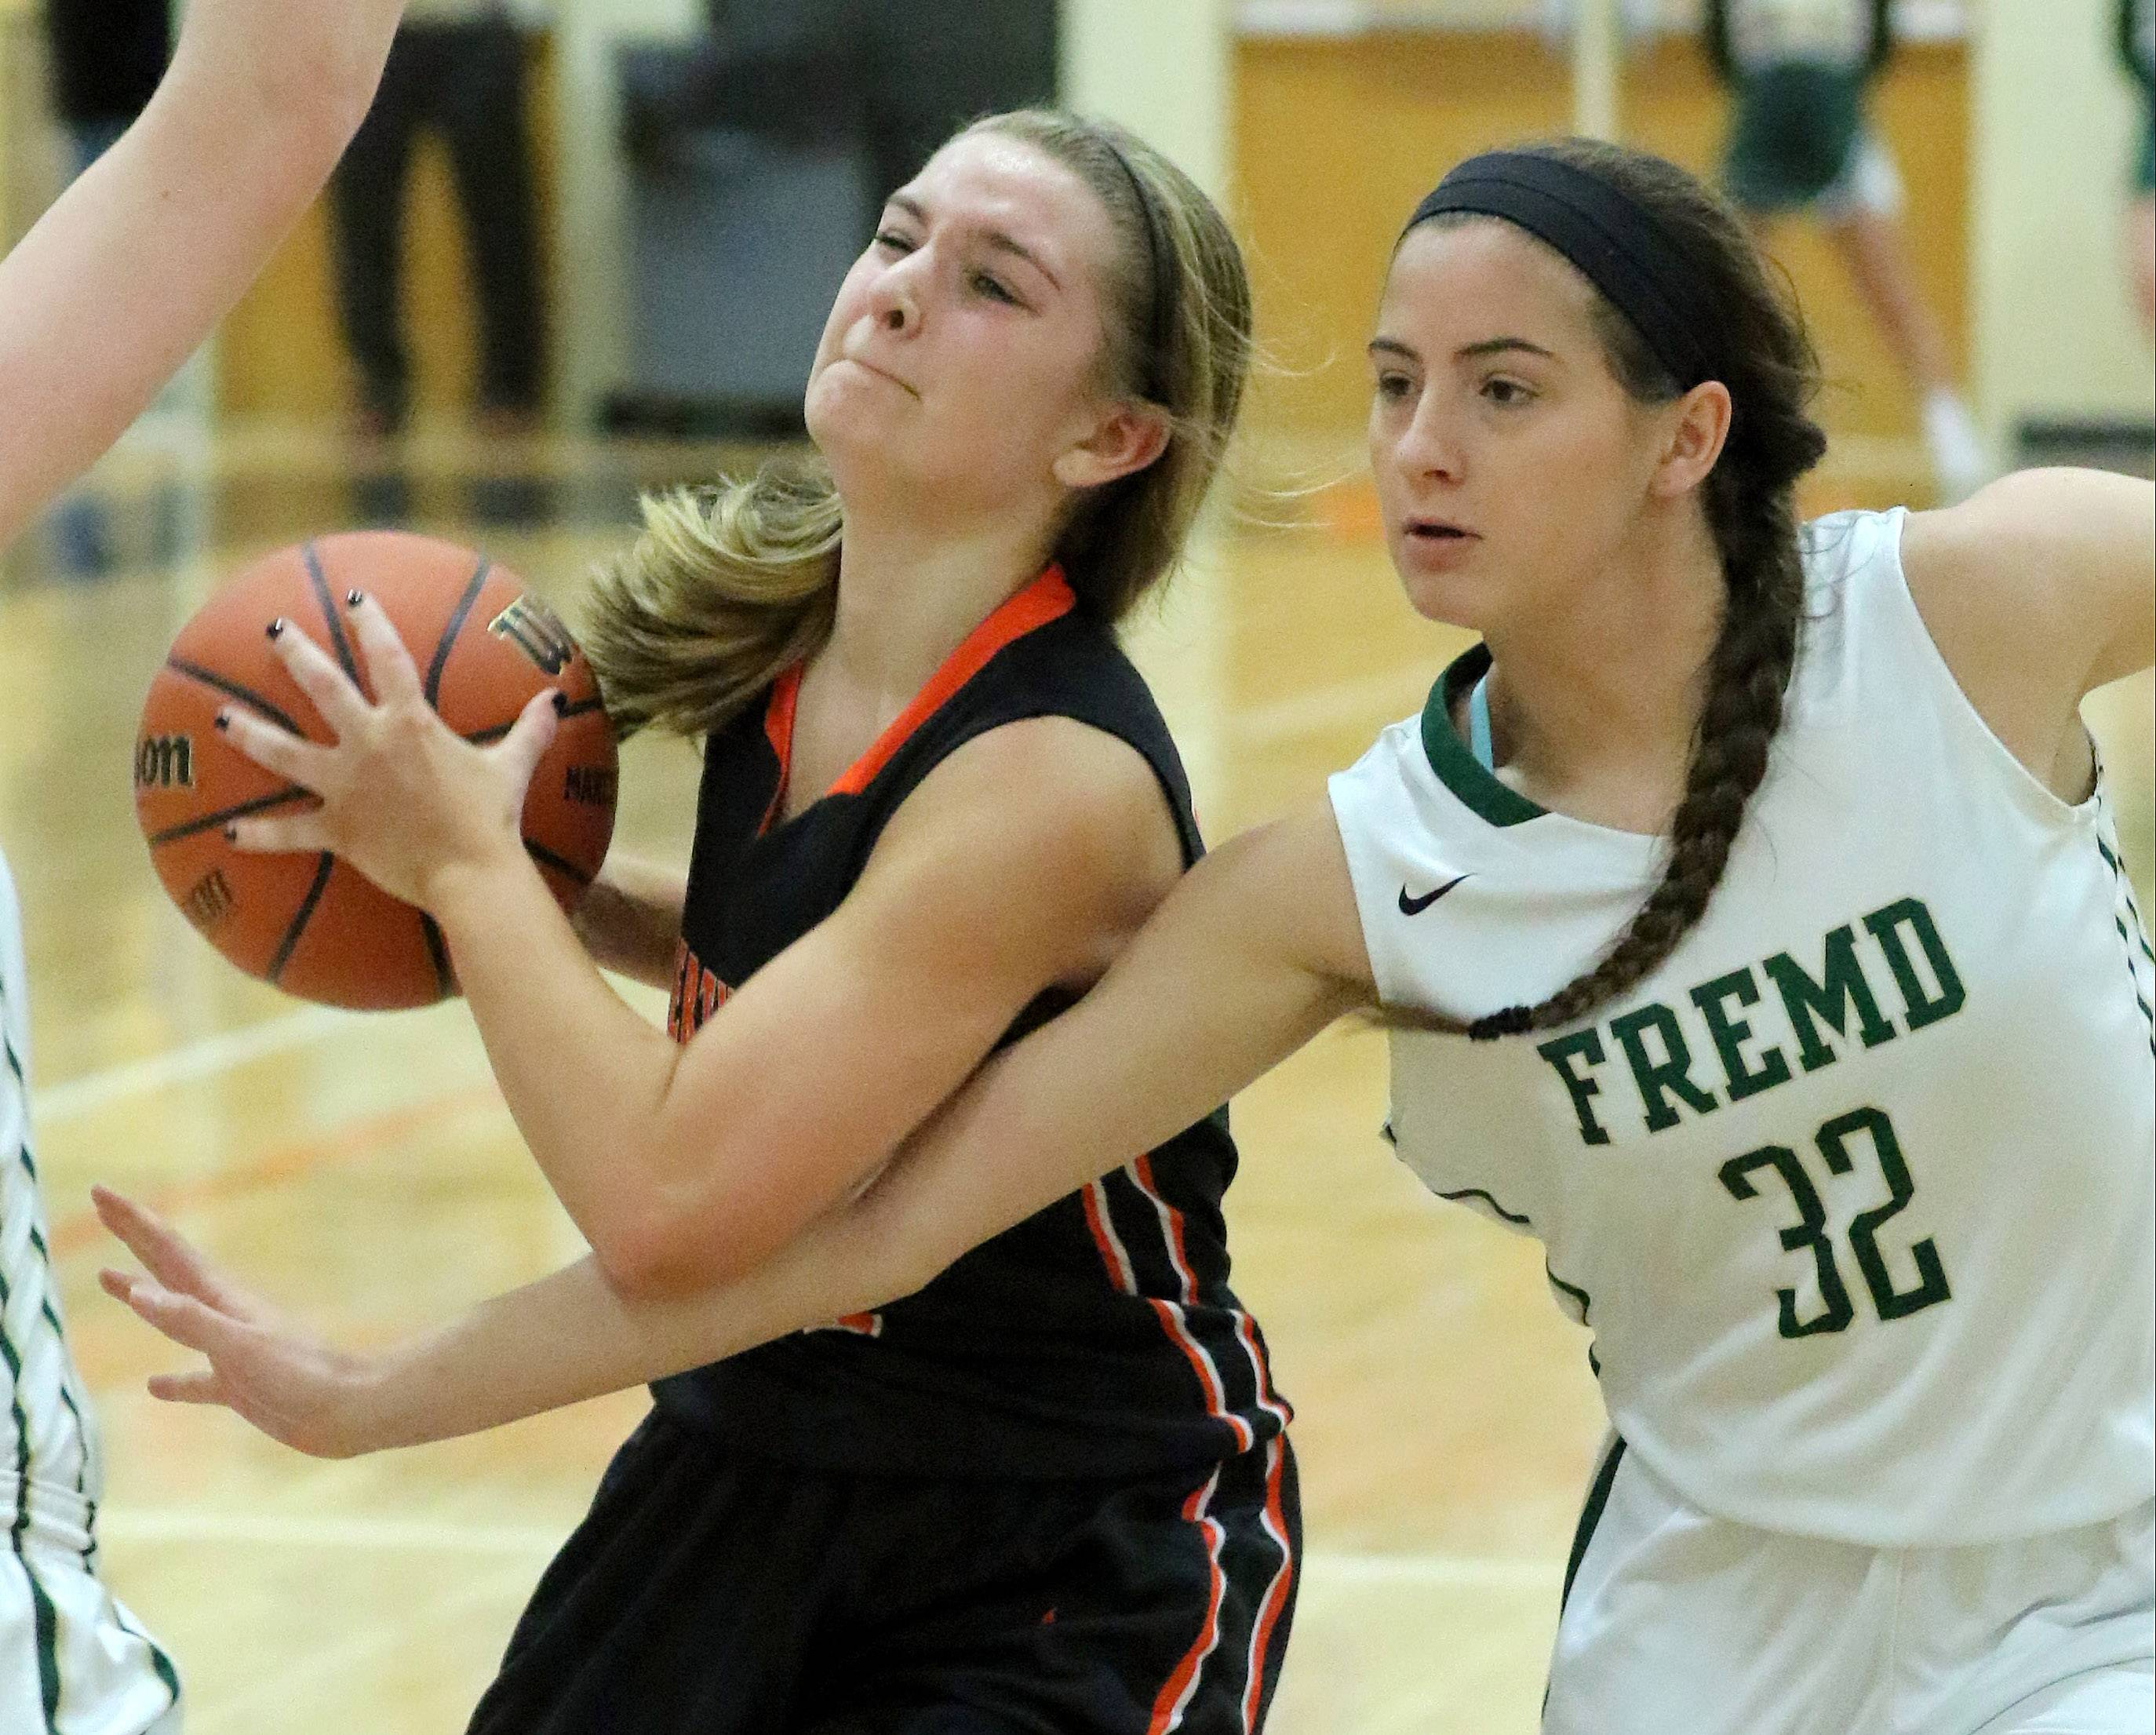 Libertyville's Morgan Manski, left, drives on Fremd's Angie Zara during Class 4A sectional semifinal play Monday at Libertyville.